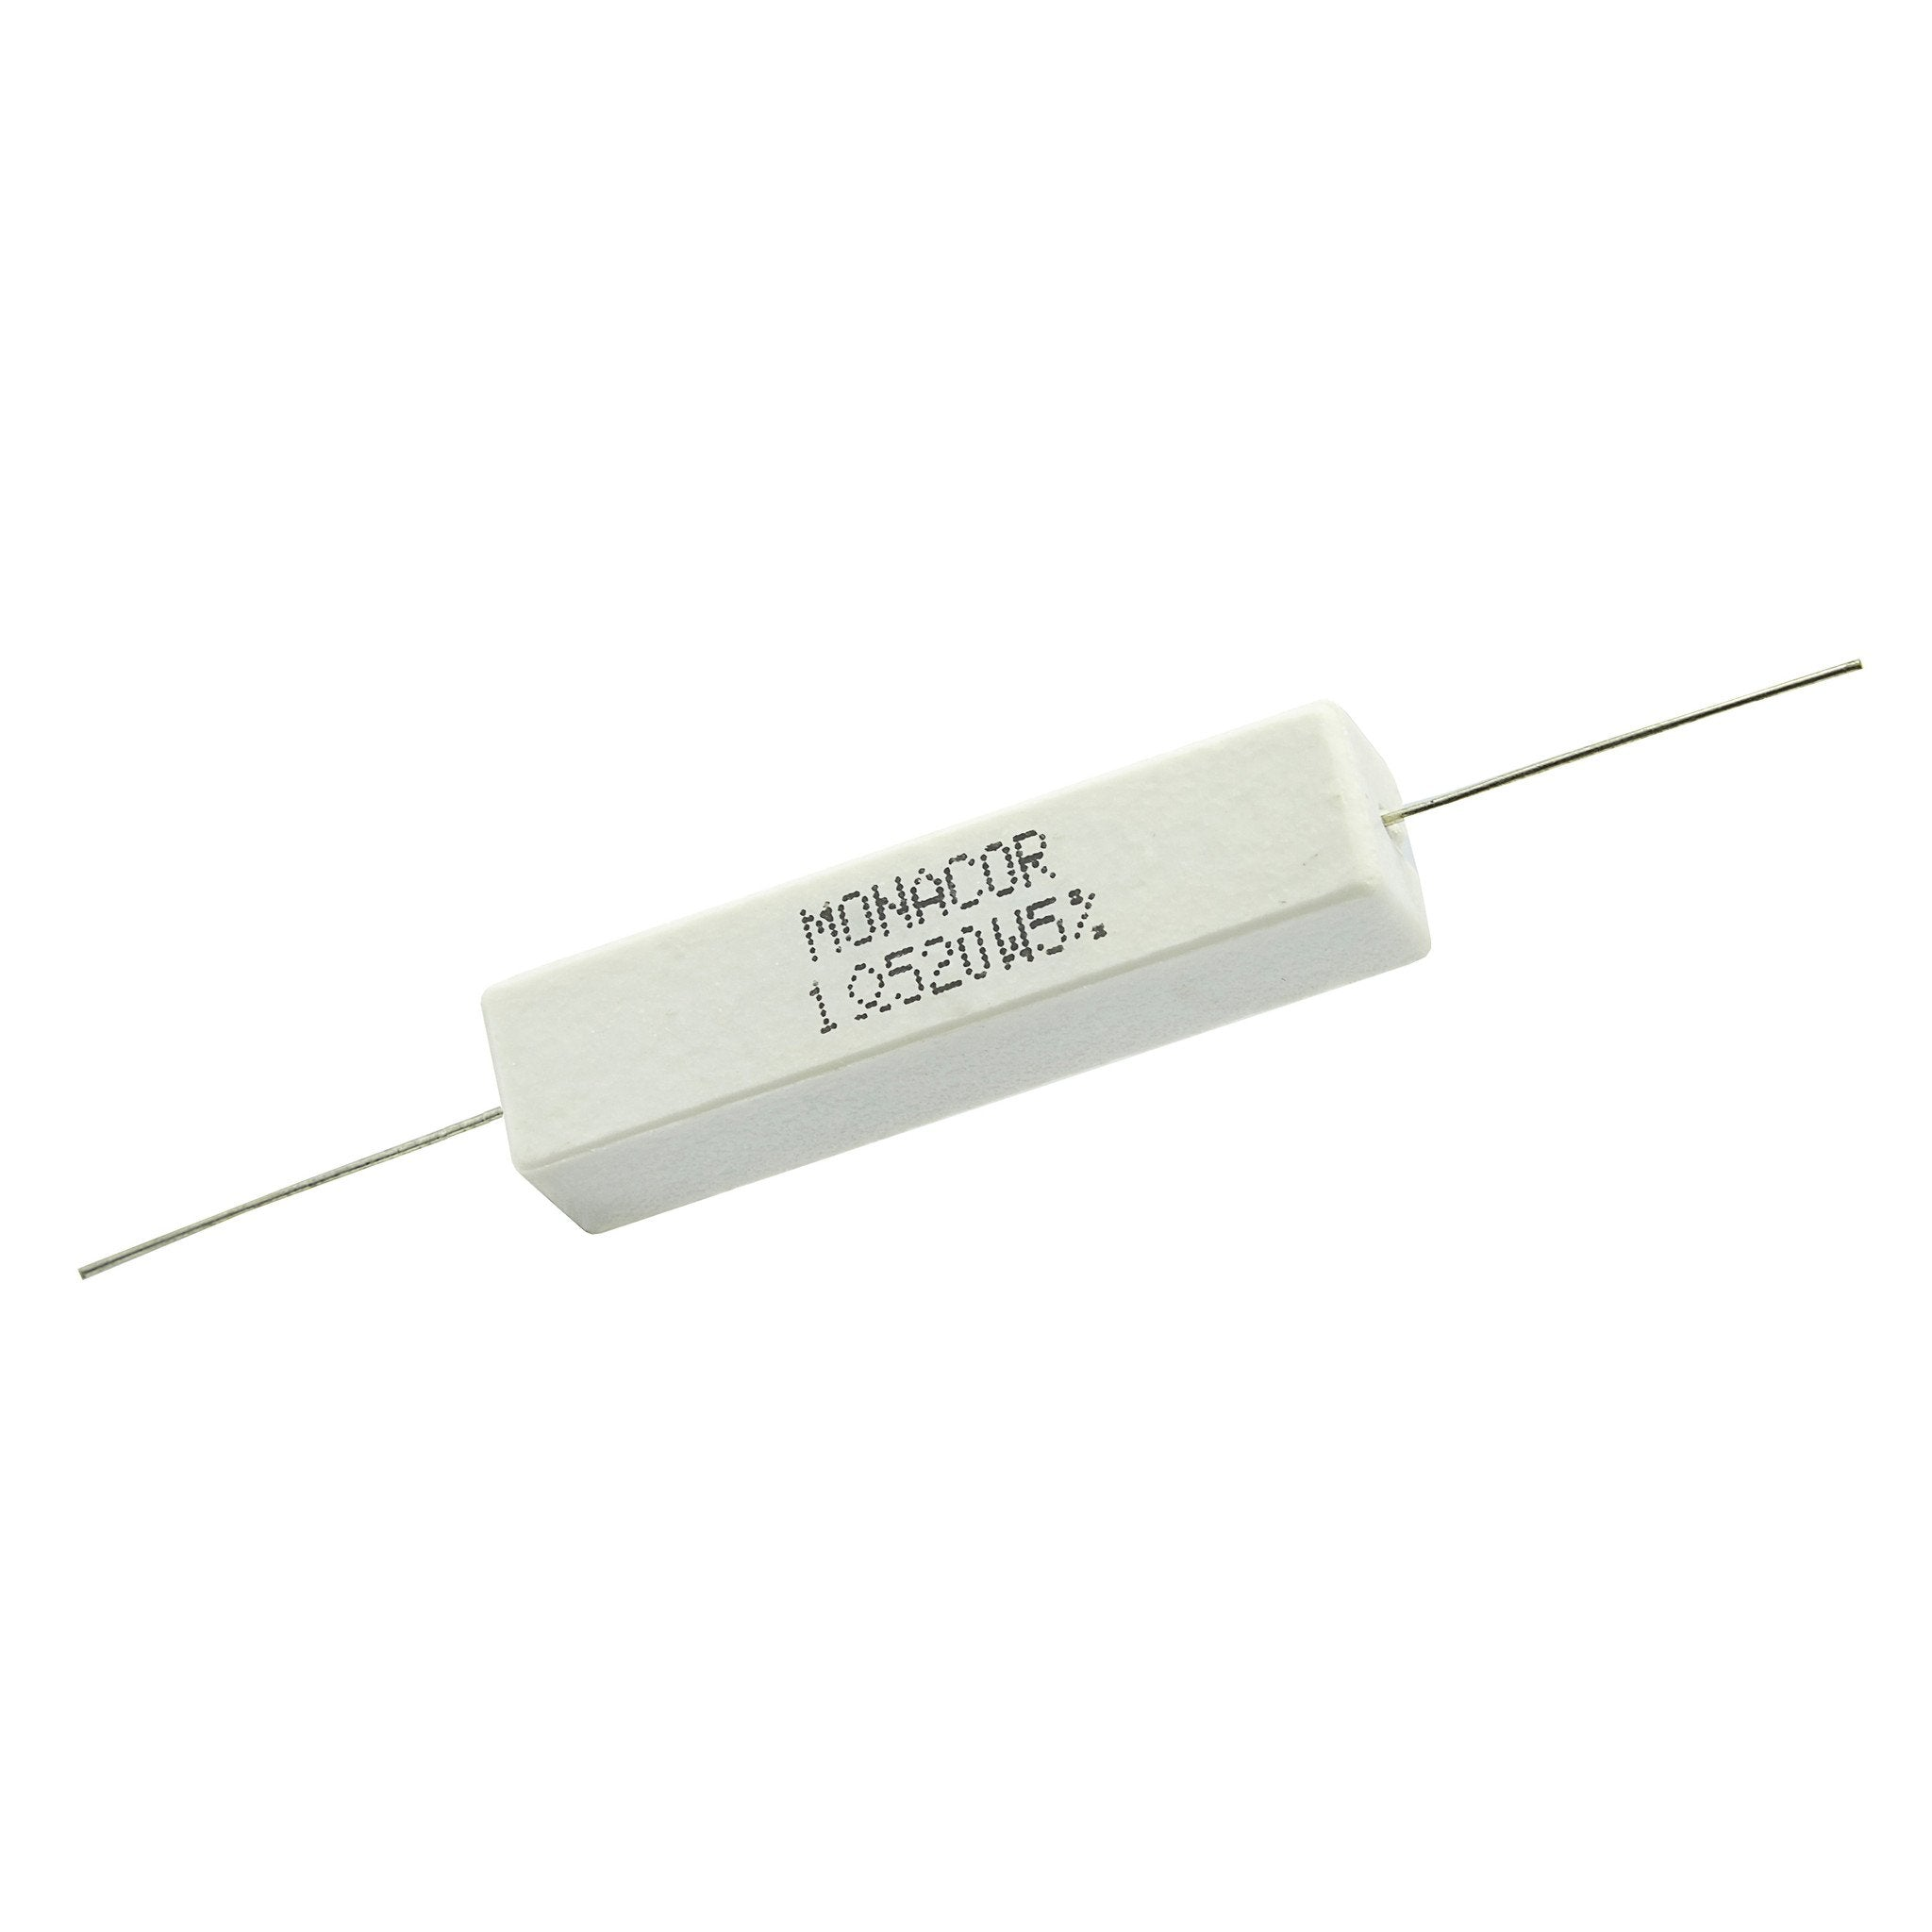 1.5 Ohm 20 Watt 5% Ceramic Wirewound Resistor - Willys-Hifi Ltd